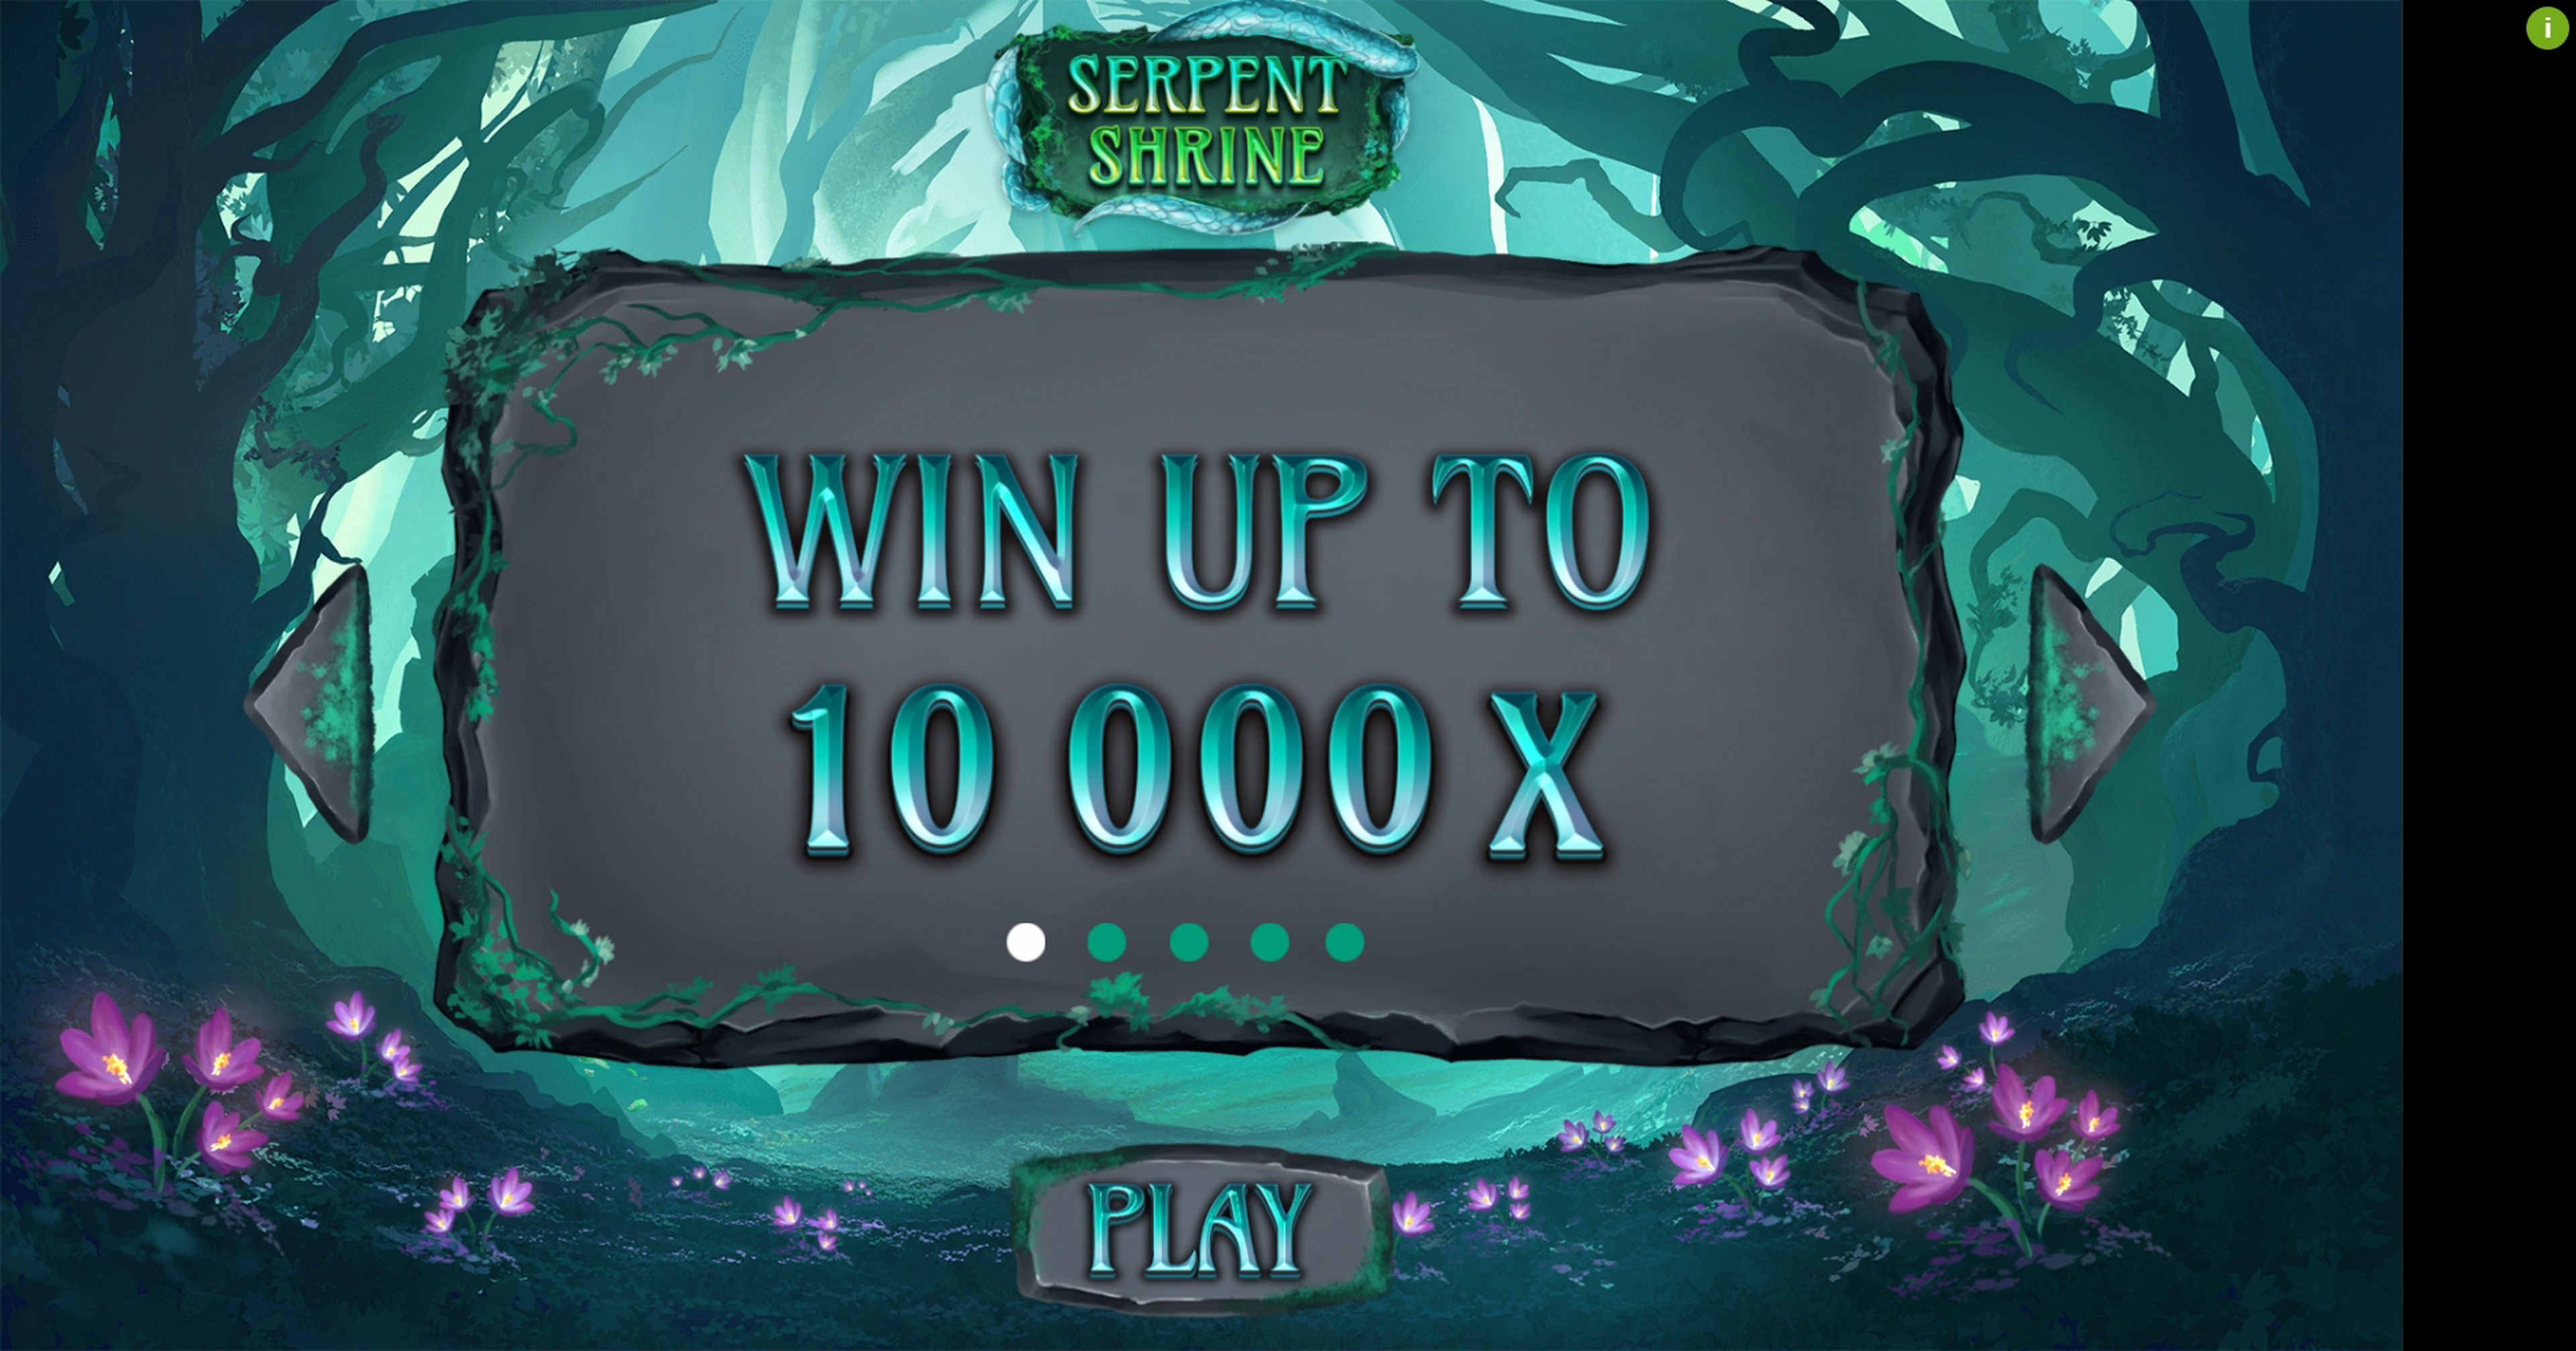 Play Serpent Shrine Free Casino Slot Game by Fantasma Games